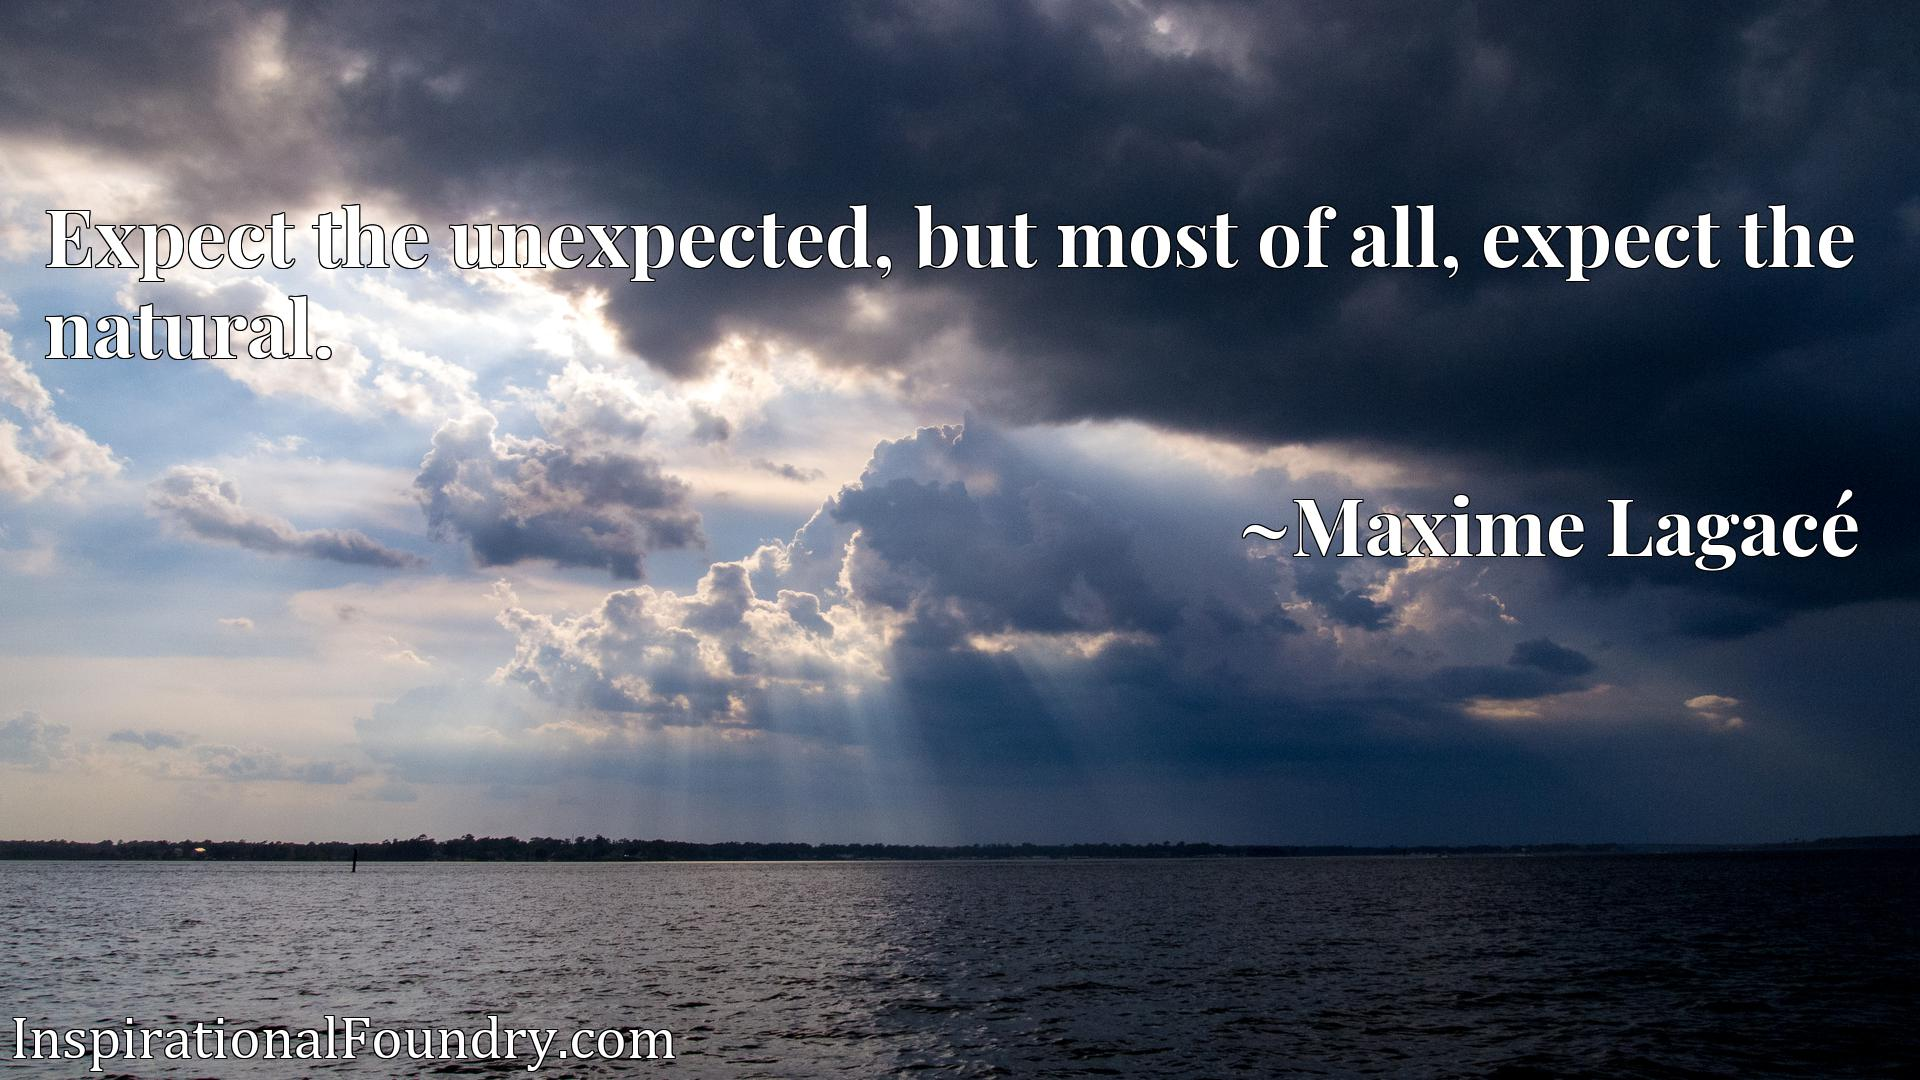 Expect the unexpected, but most of all, expect the natural.